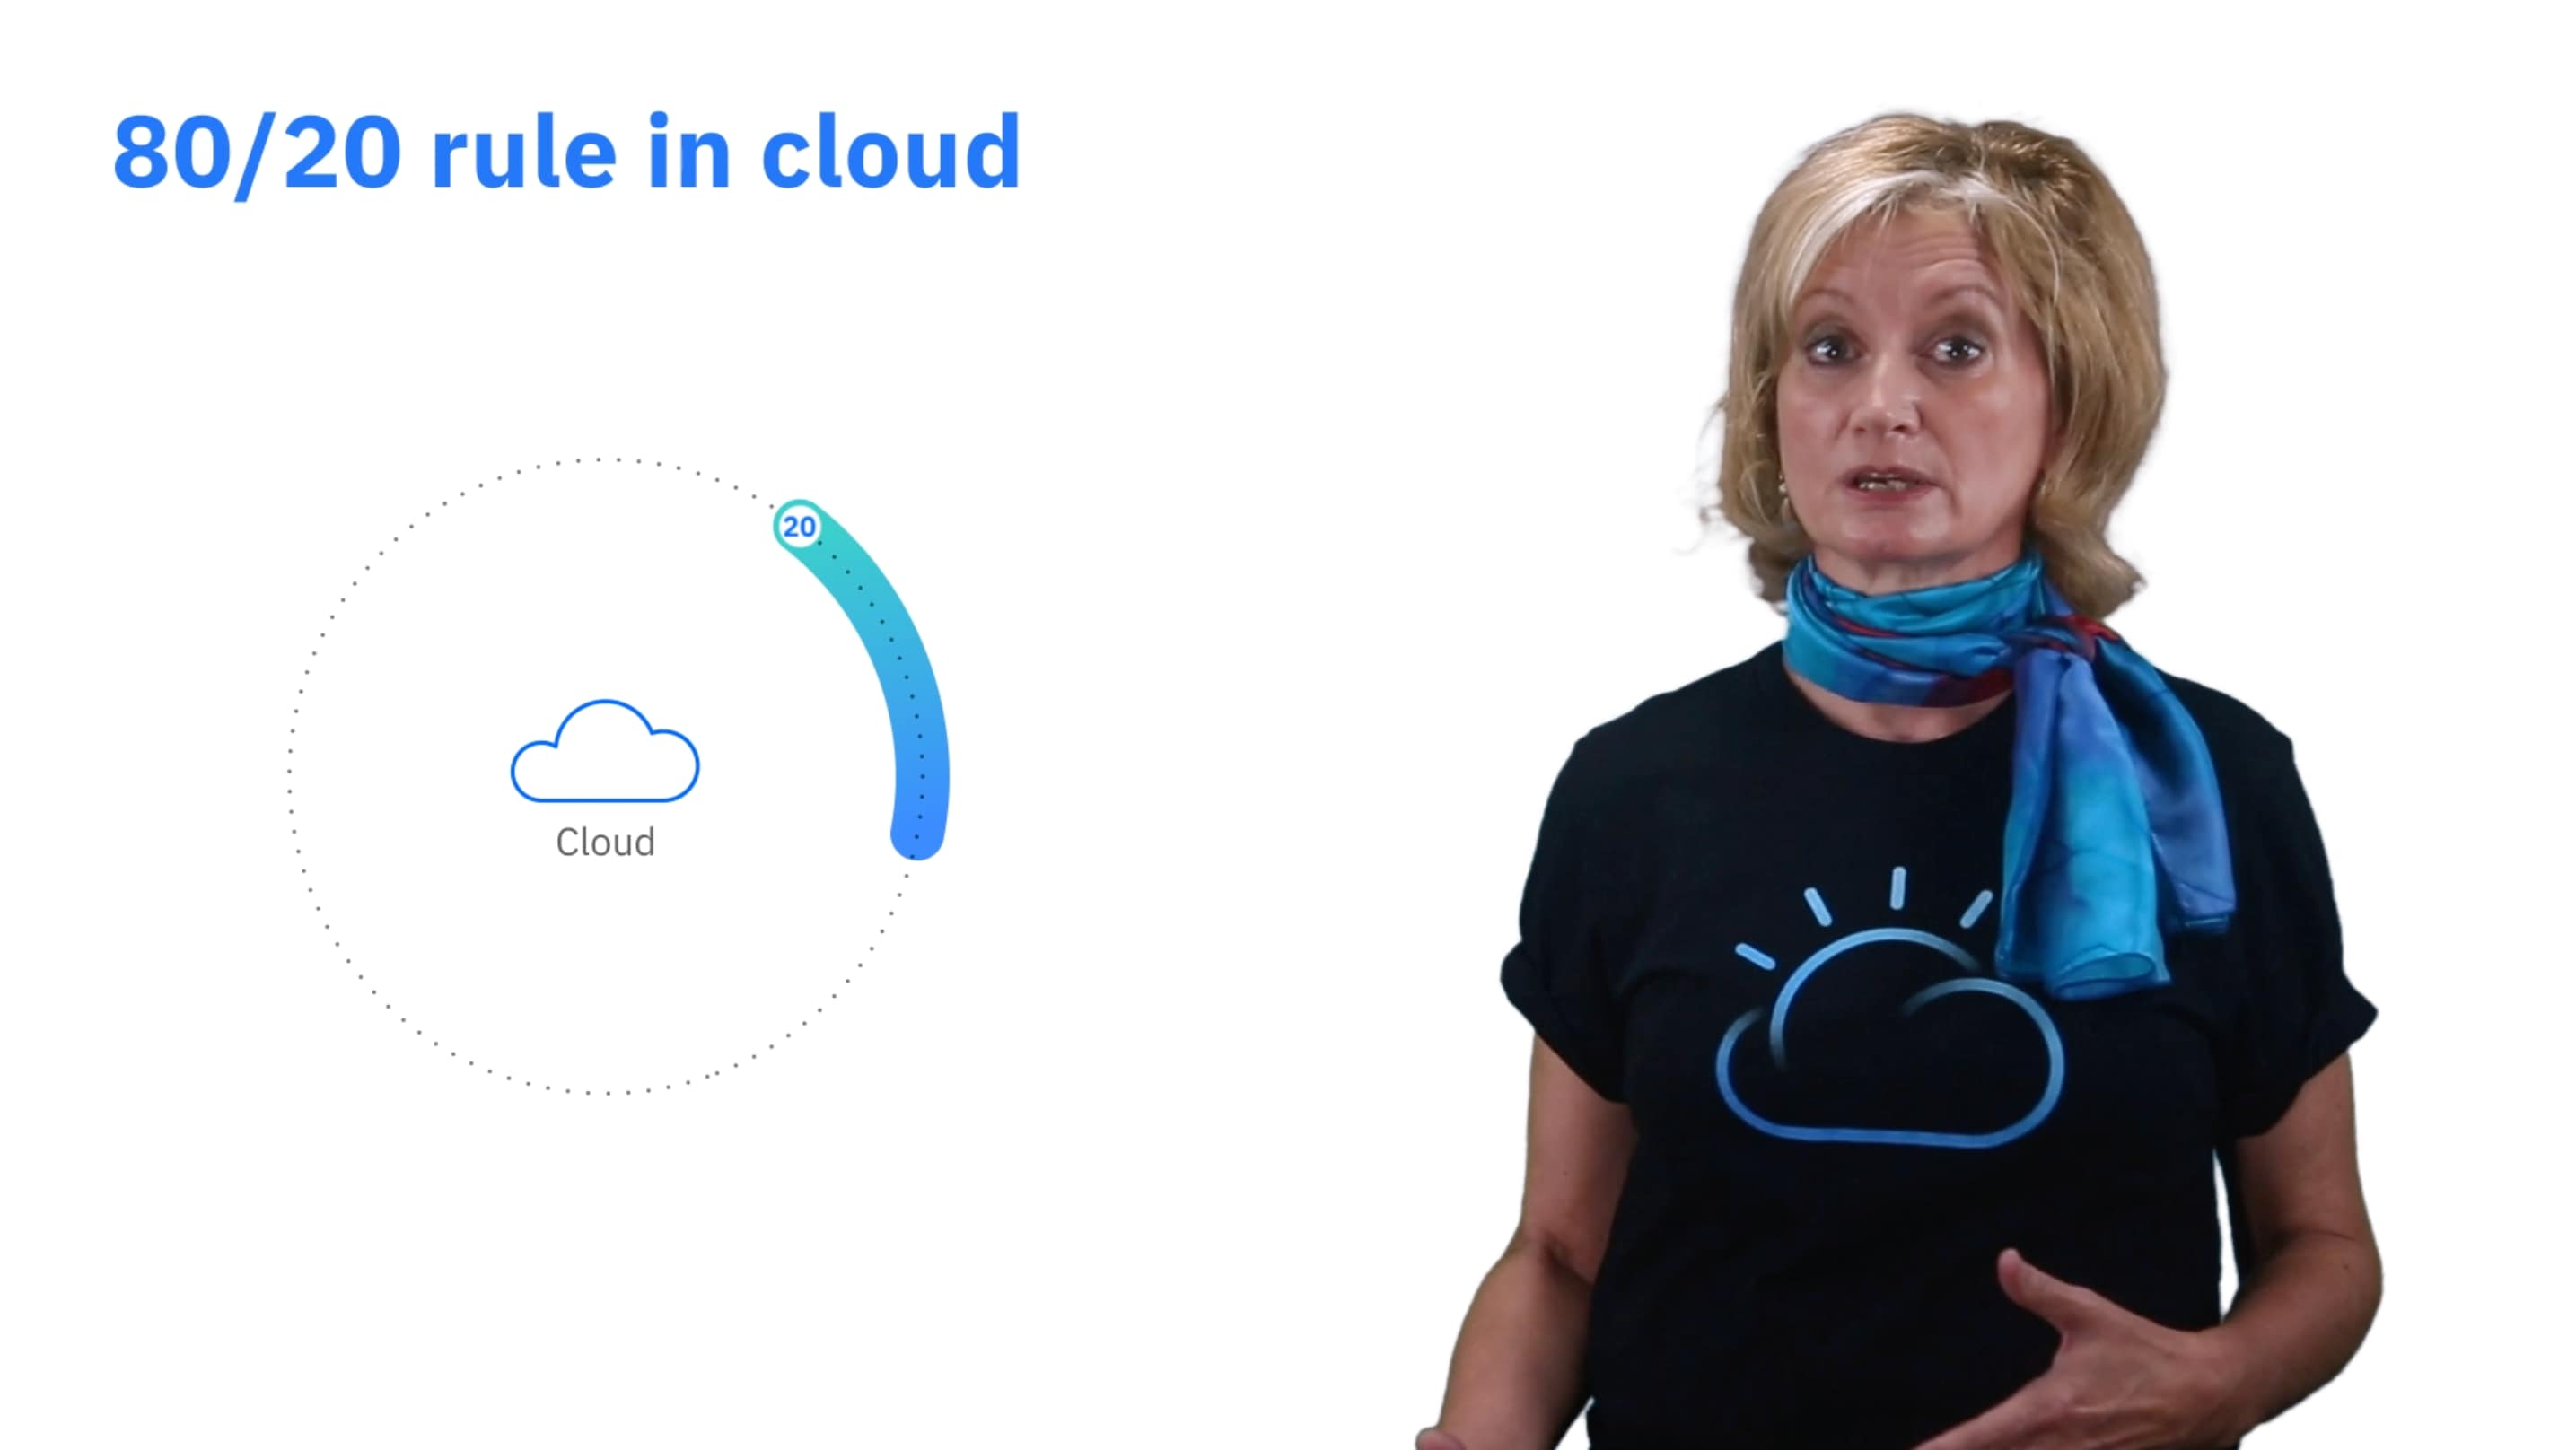 The 80/20 rule in cloud.